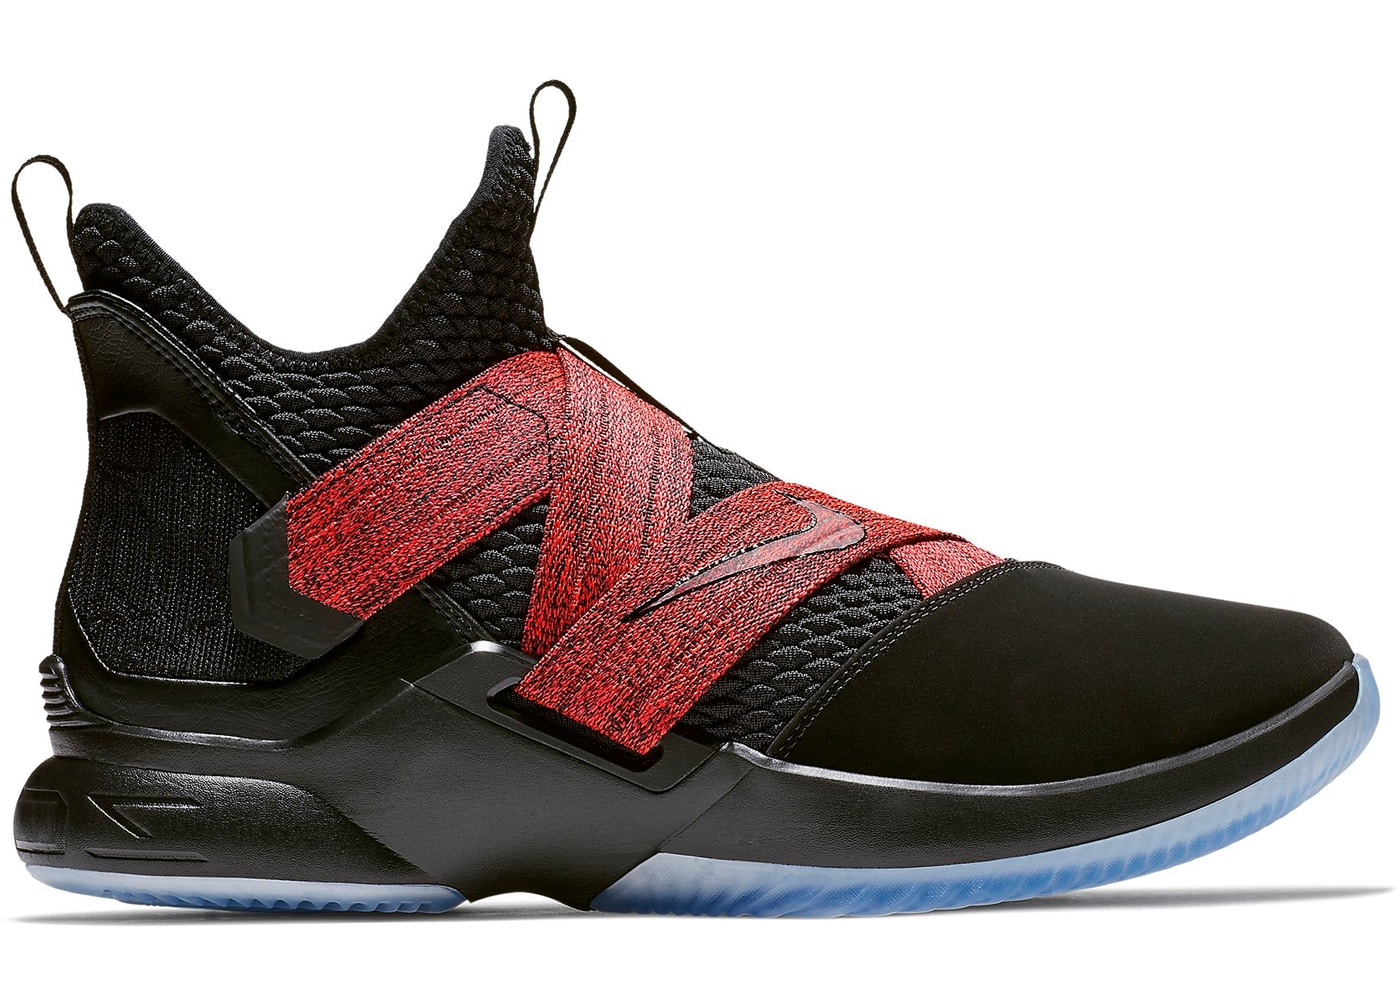 online retailer d4fc9 67ed1 Nike LeBron Other Shoes - Release Date